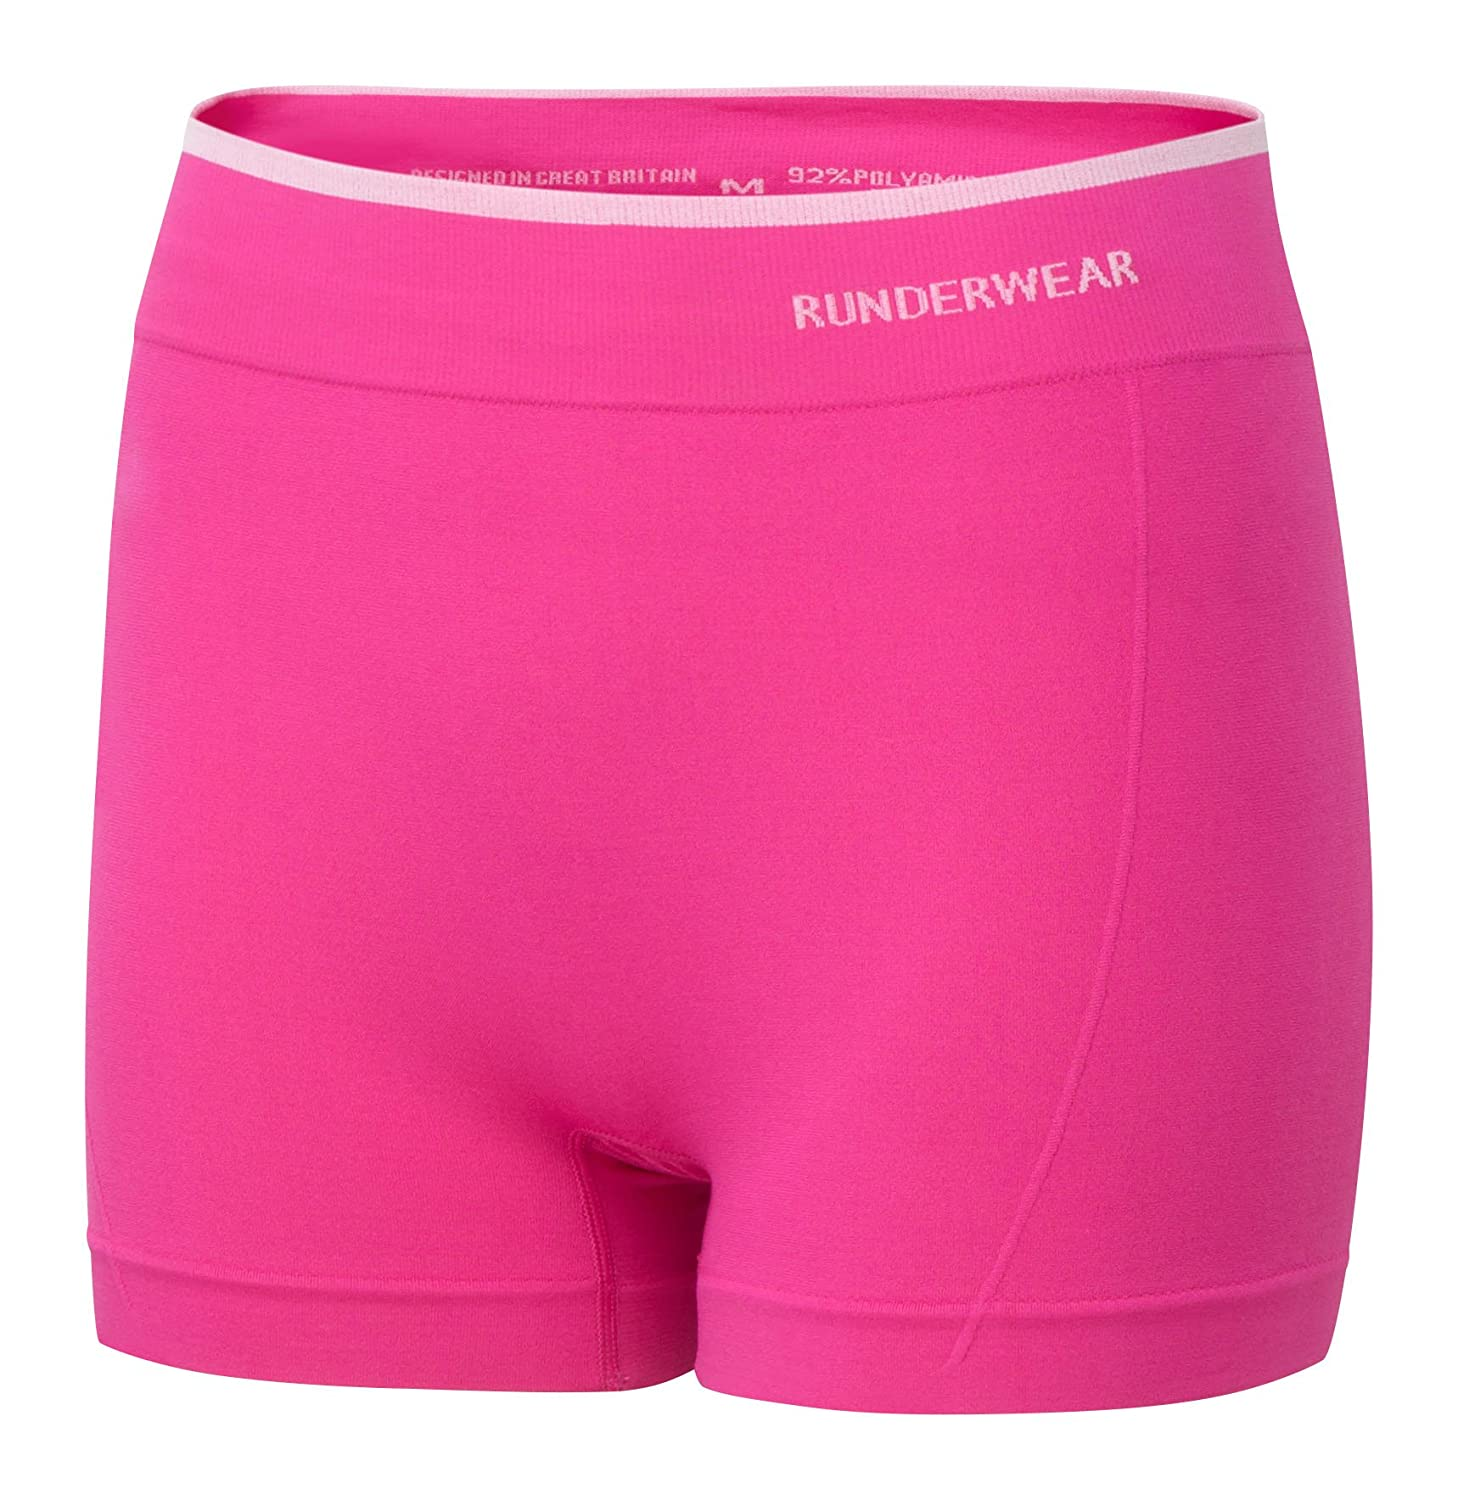 Runderwear Women's Hot Pants **2 Pair Pack**   Chafe-Free Performance Underwear with Seamless Technology RB0090-X2